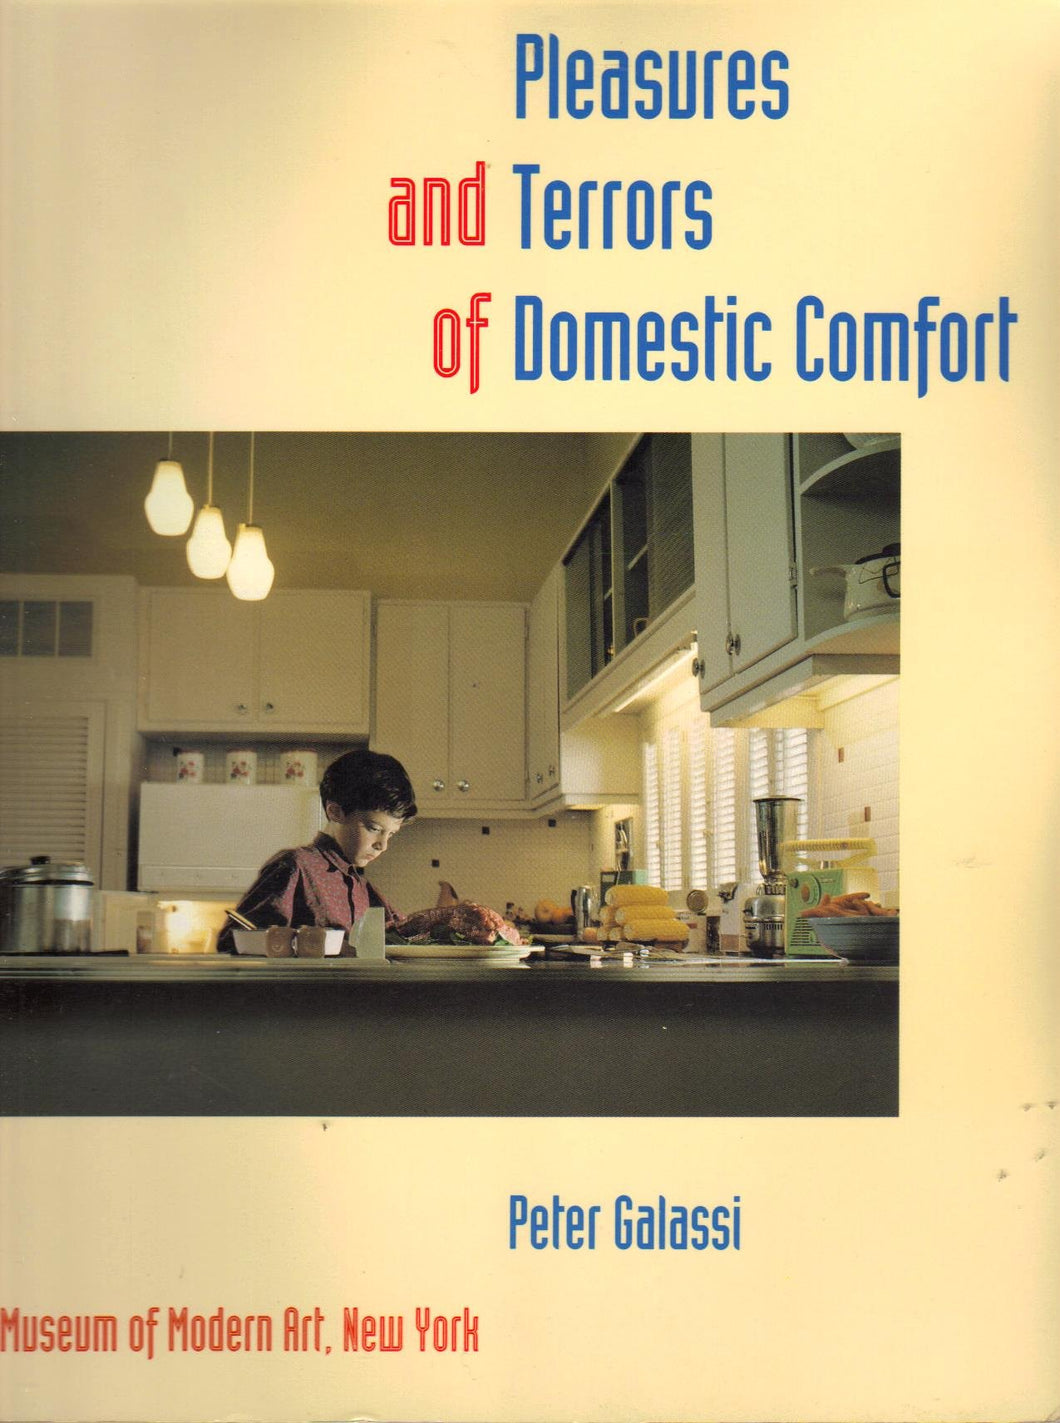 The Pleasures and Terrors of Domestic Comfort by Peter Galassi